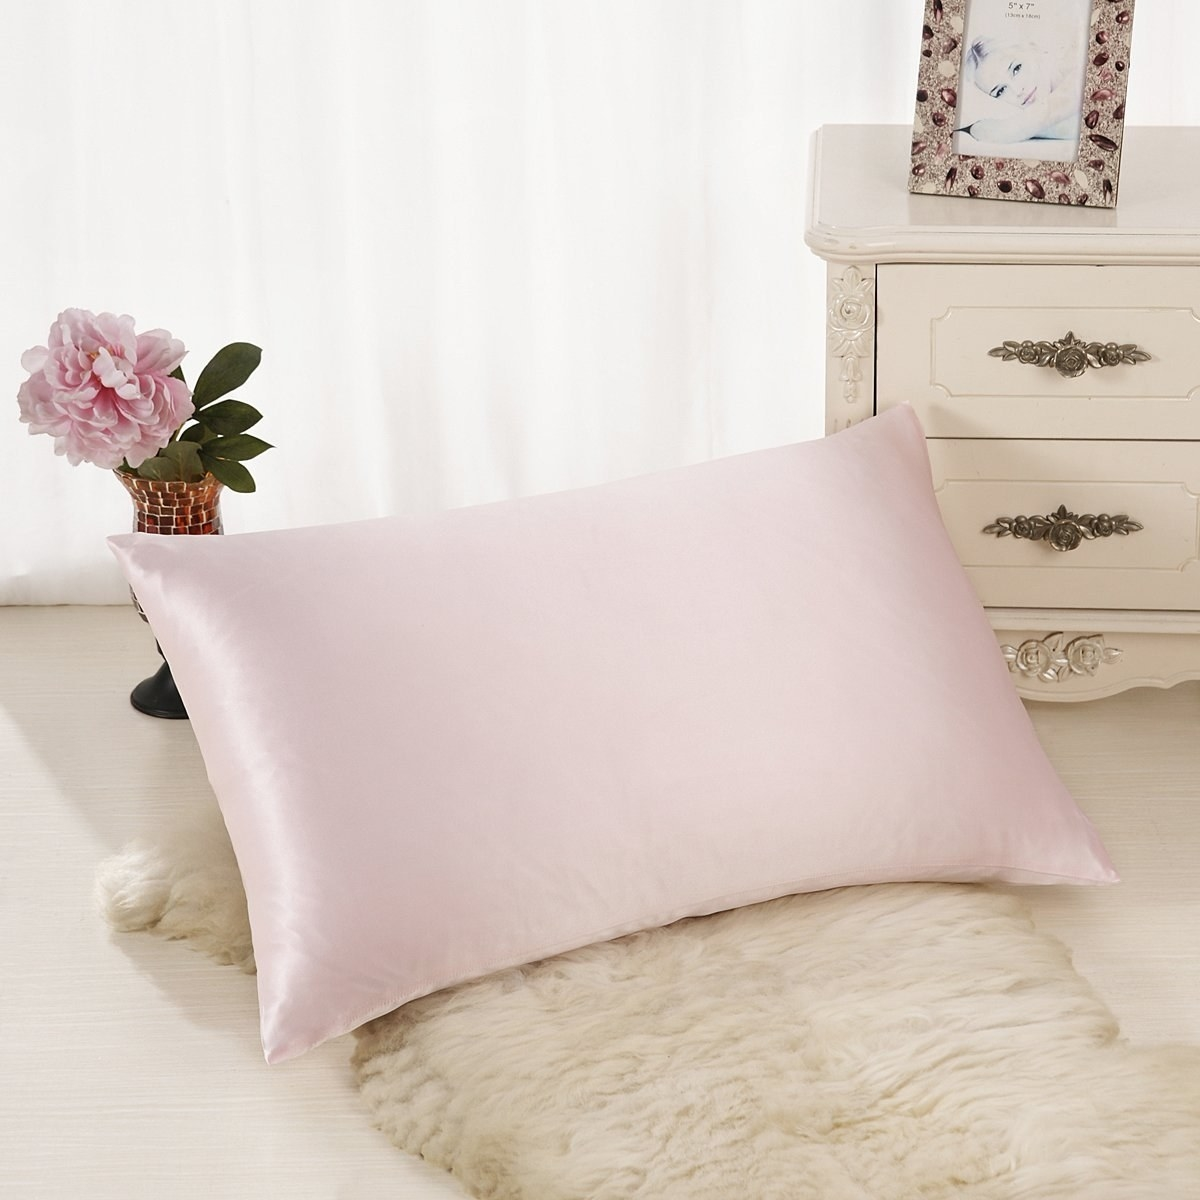 the pillowcase in pink